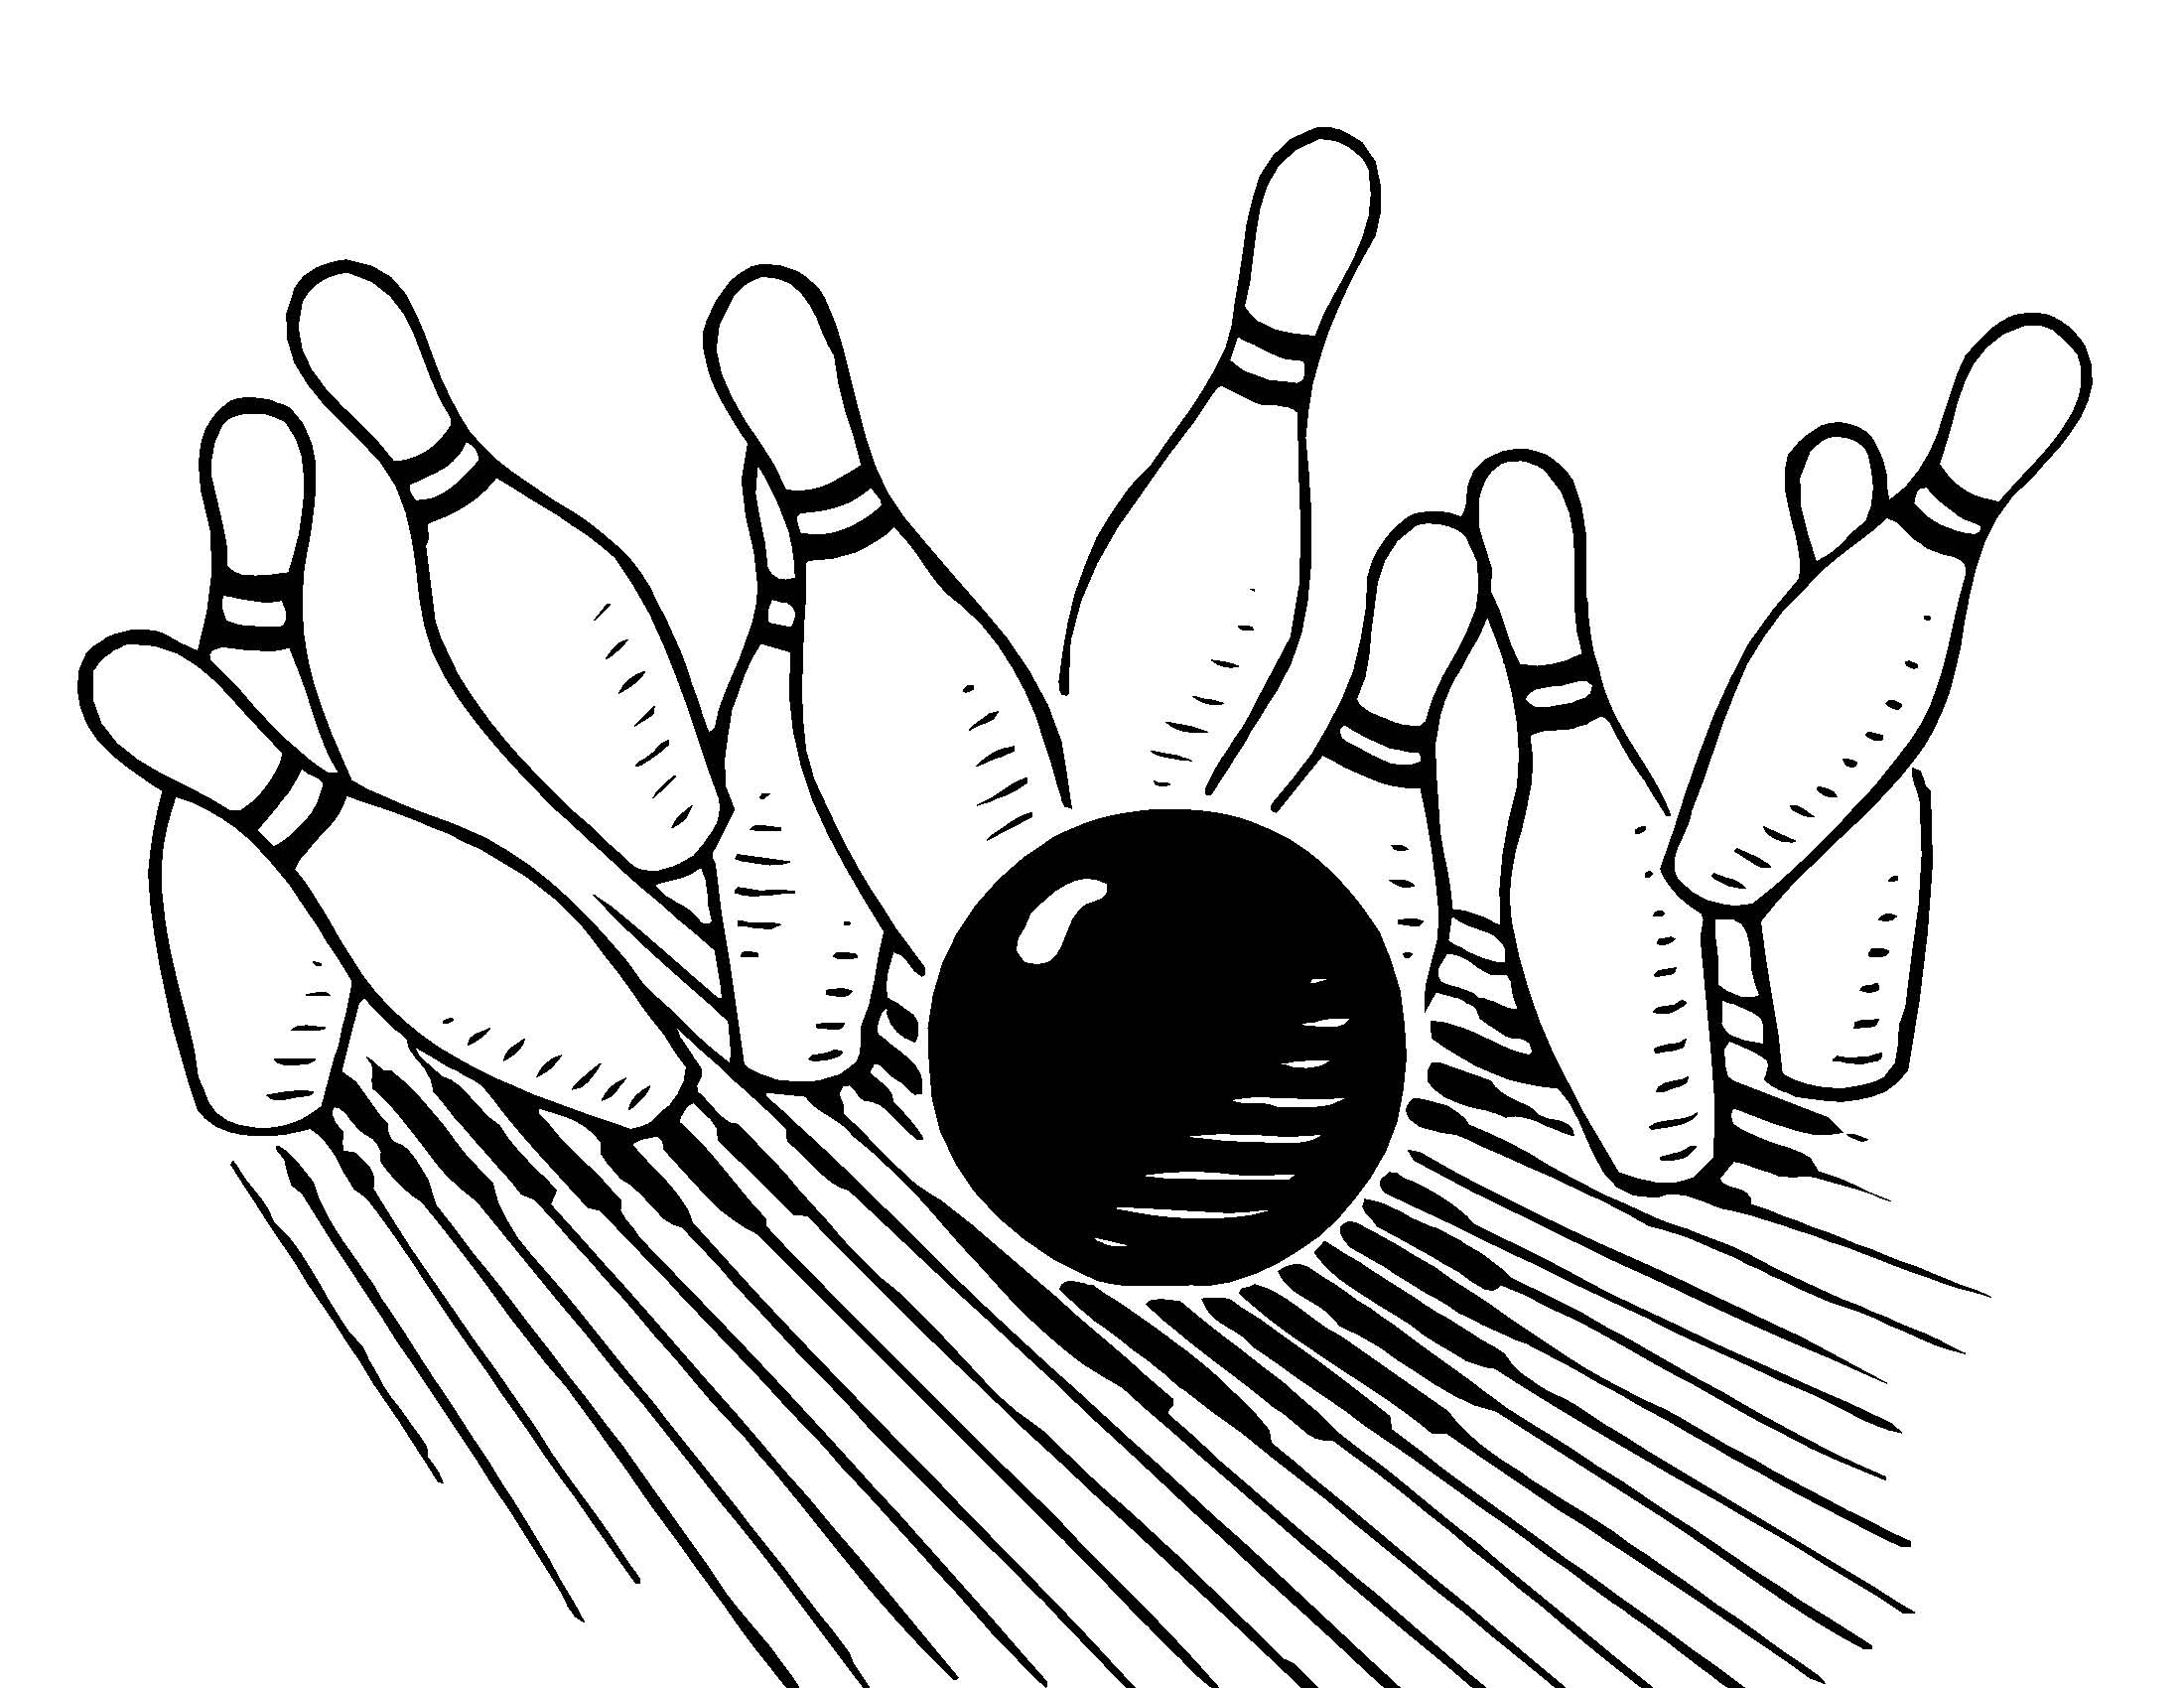 Free Pictures Of Bowling Pins And Balls, Download Free Clip Art.